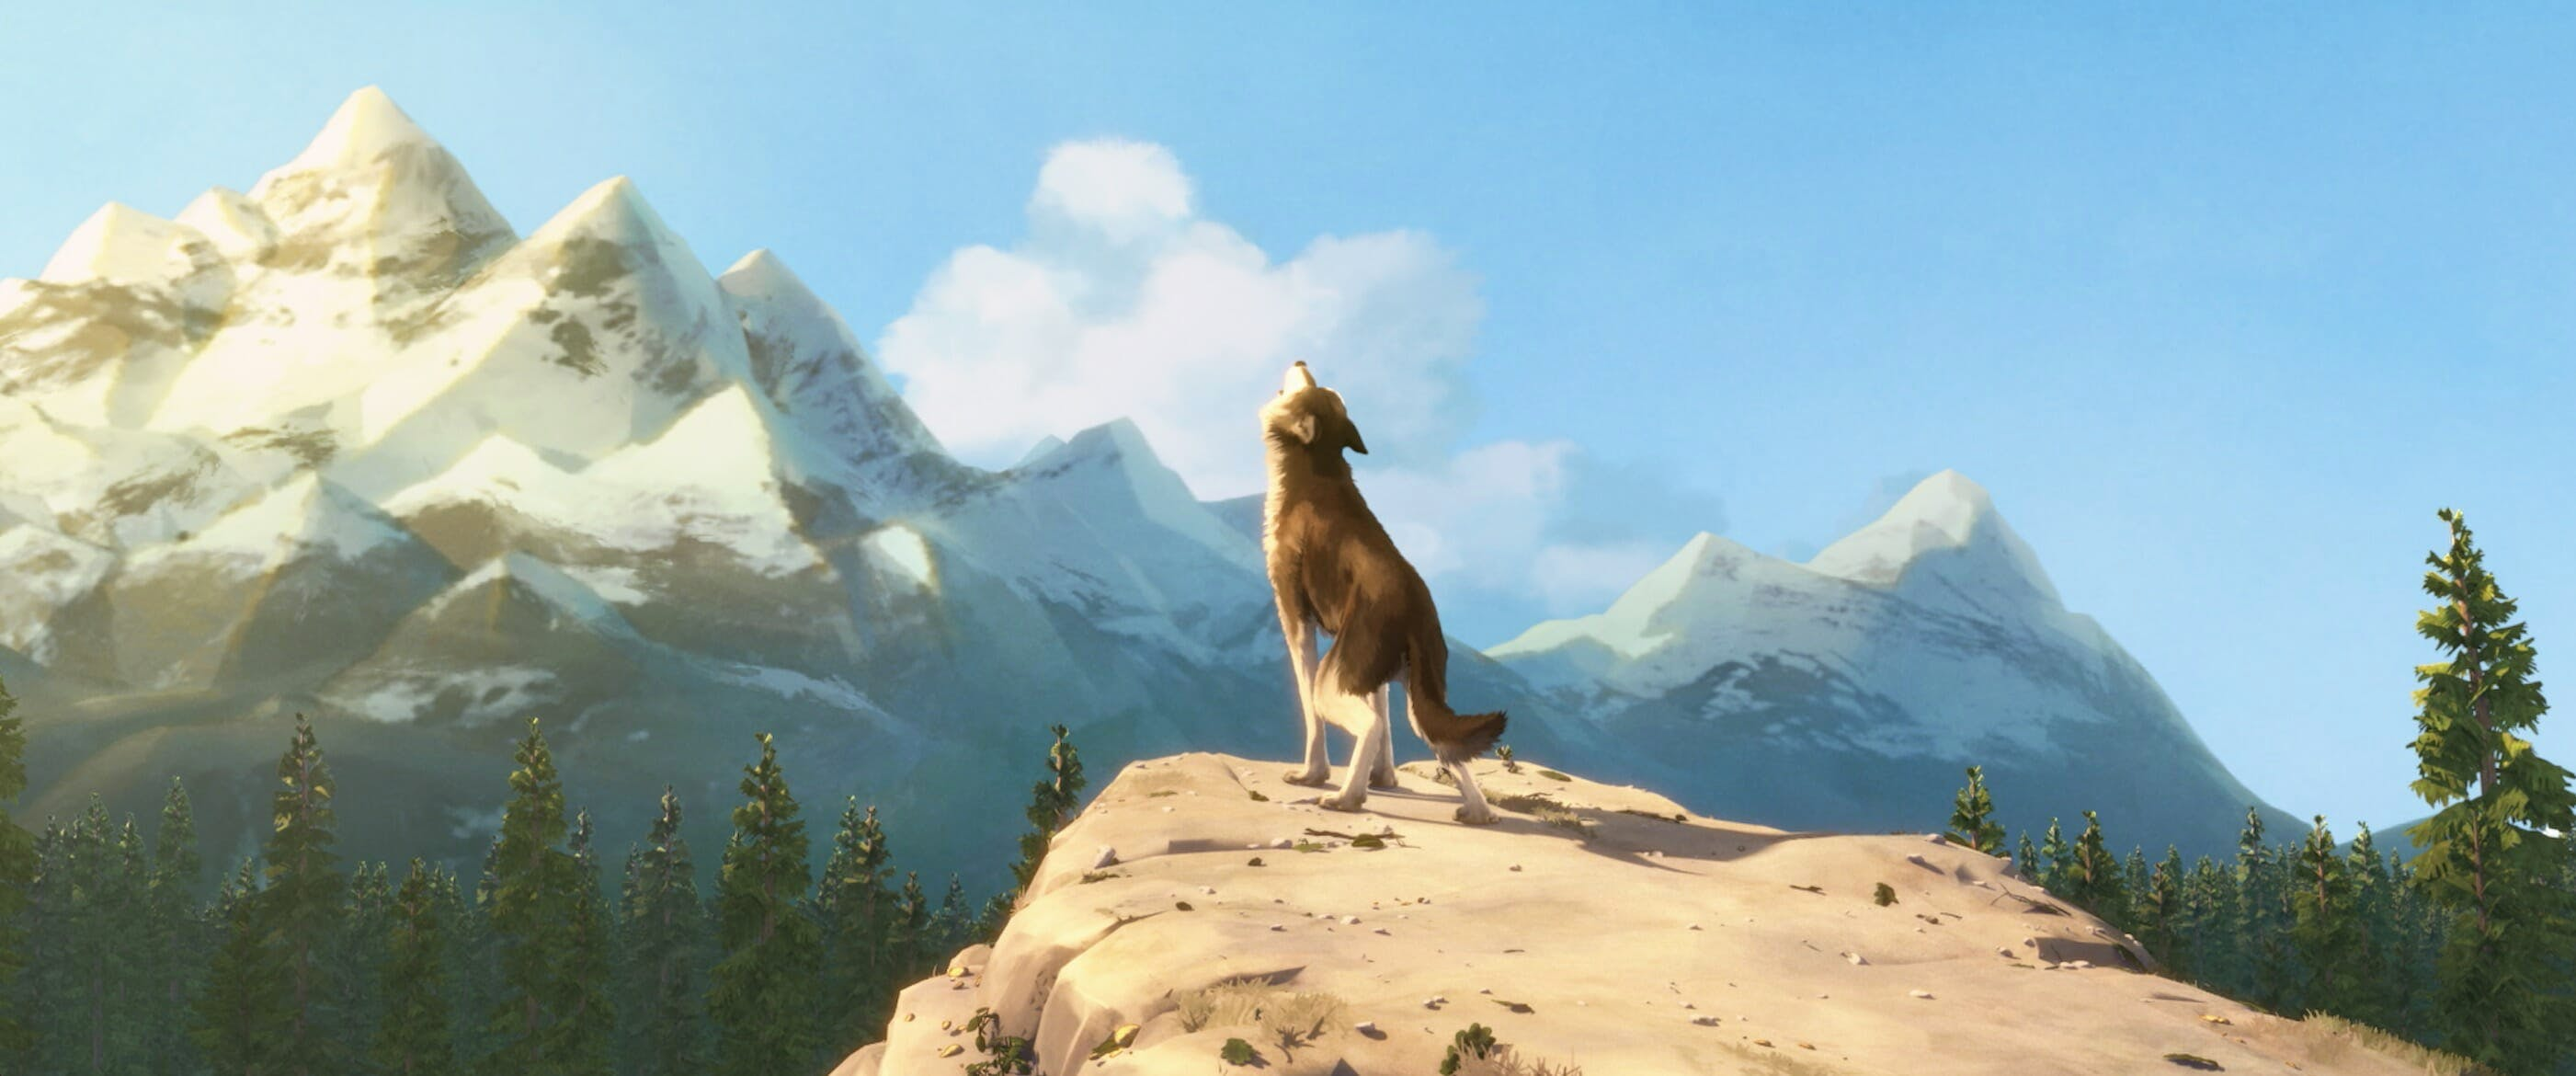 White Fang review